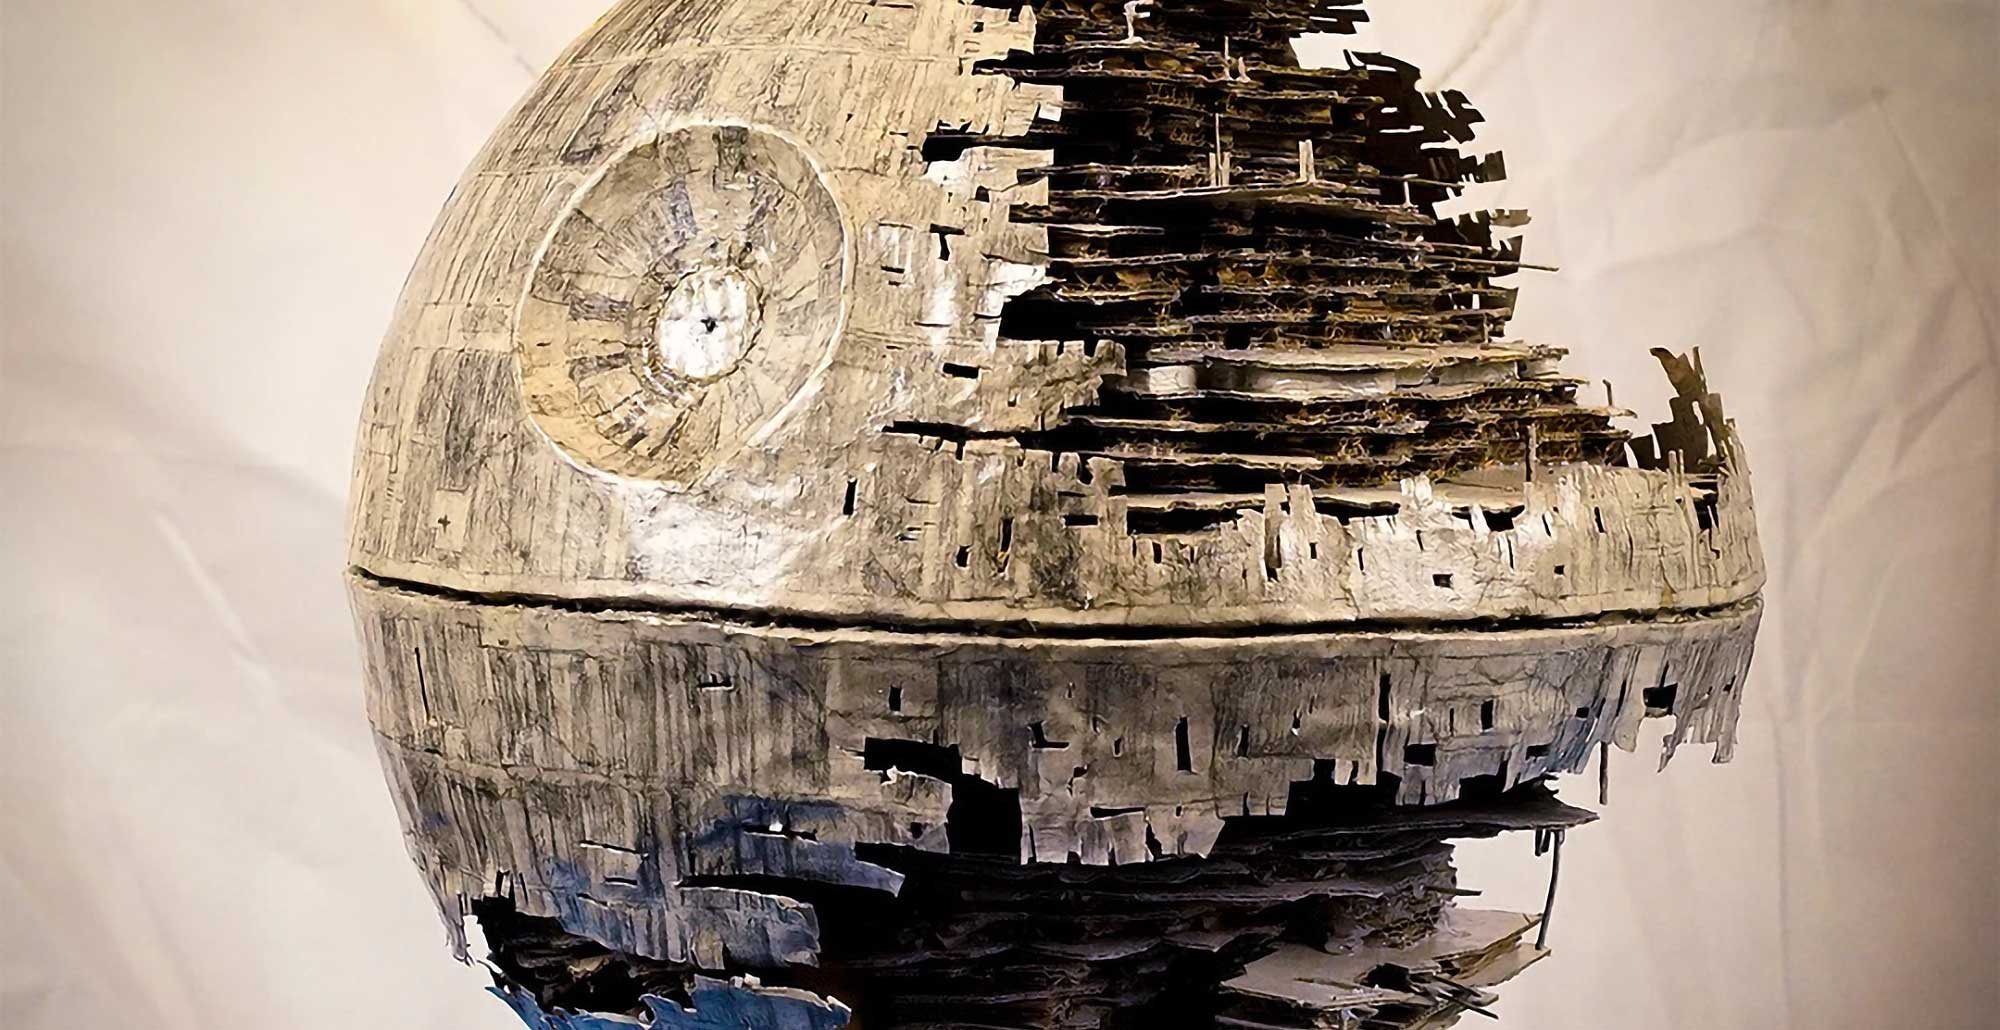 Death Star Ii Model Made Entirely Out Of Cardboard Is The Next Level Of Cardboard Art Shouts